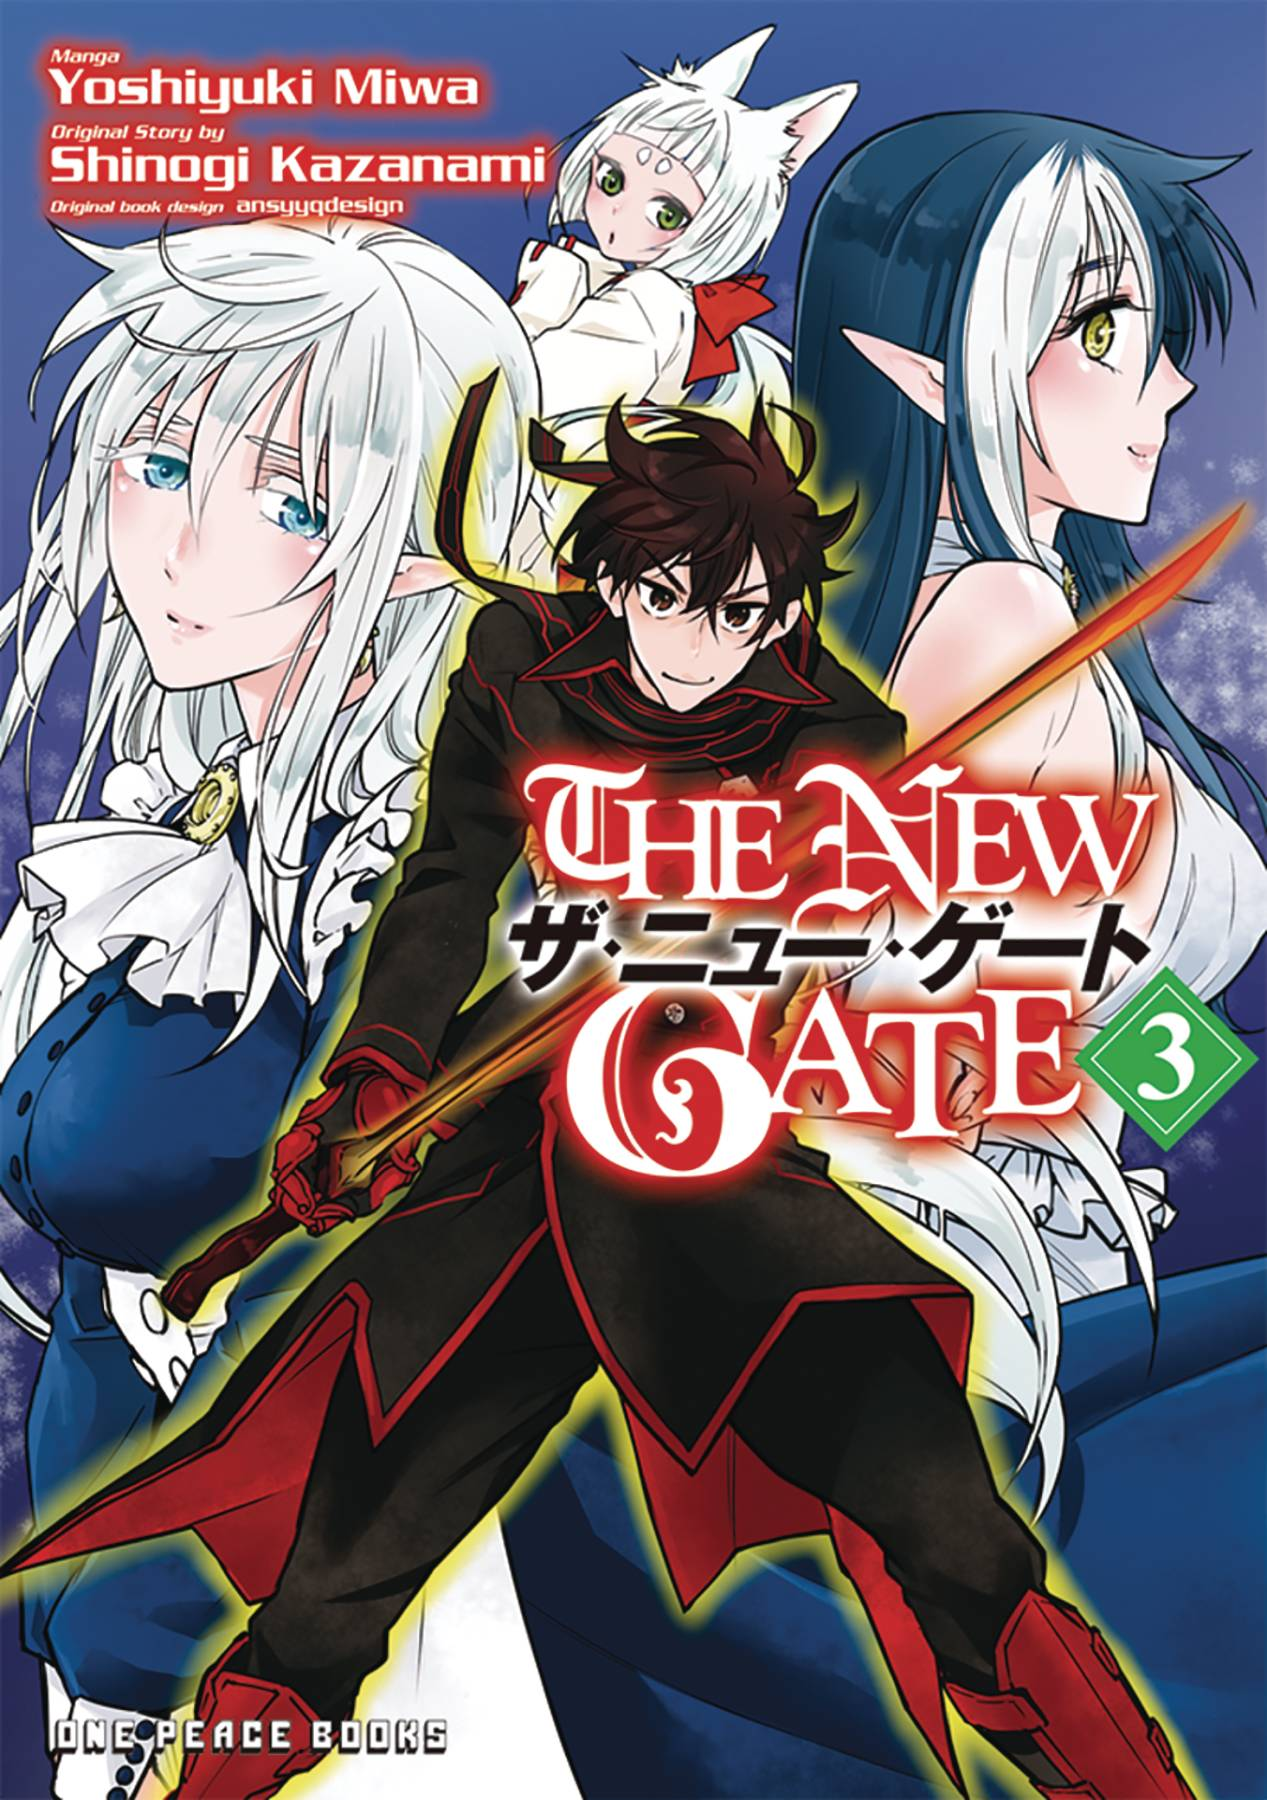 NEW GATE MANGA GN 03